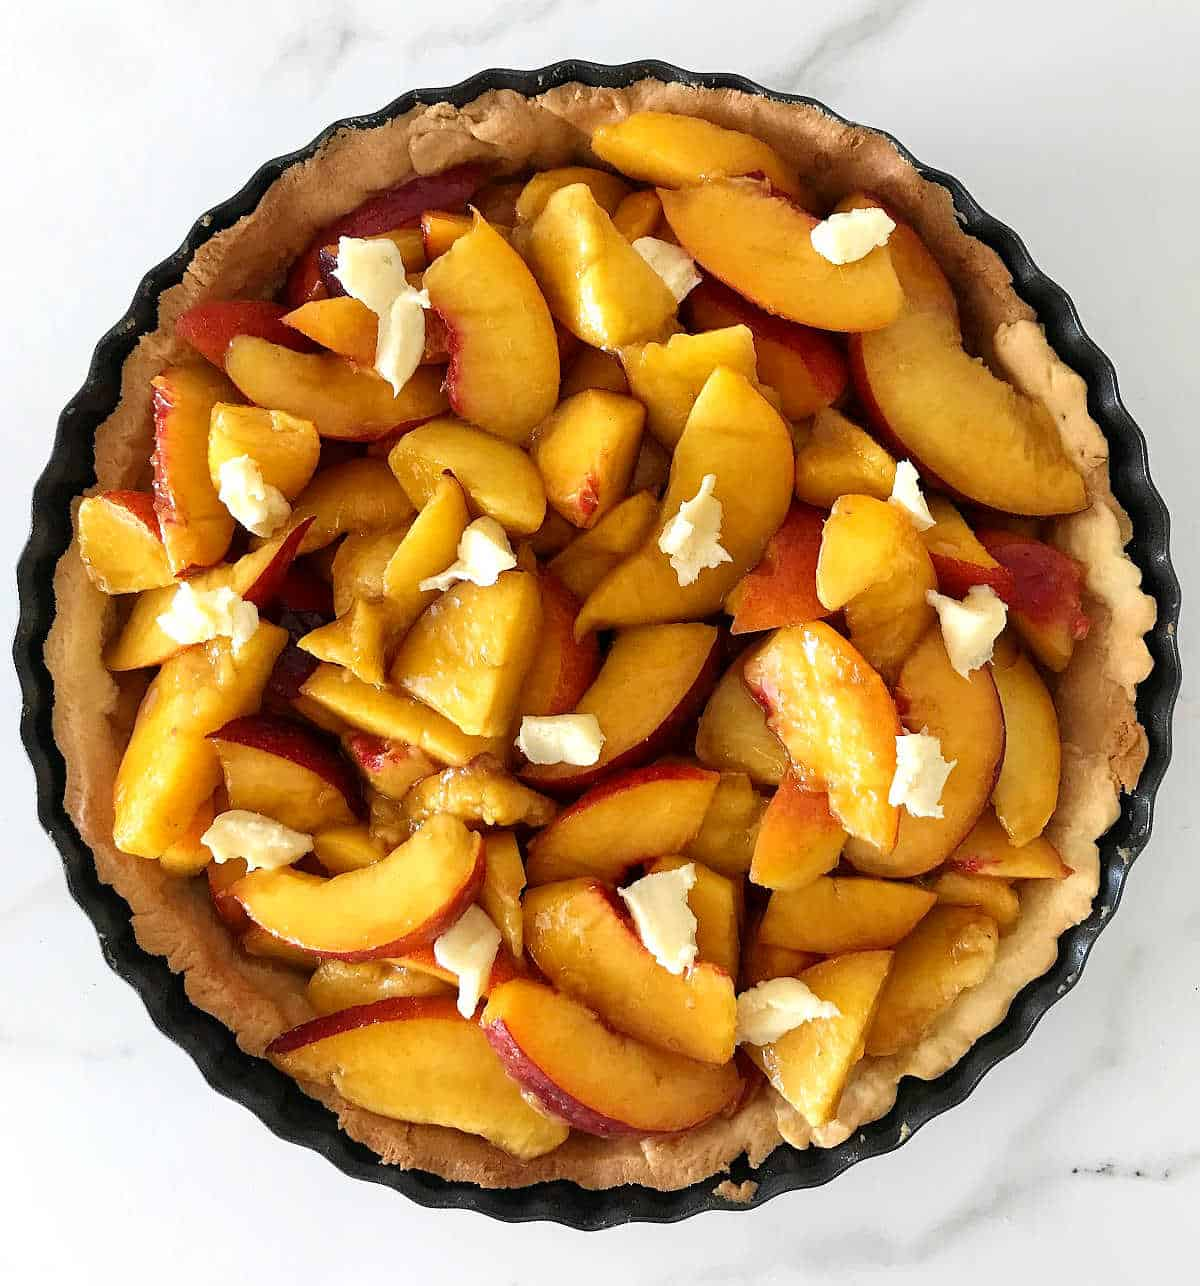 Unbaked pie peach filling in pie shell on white surface